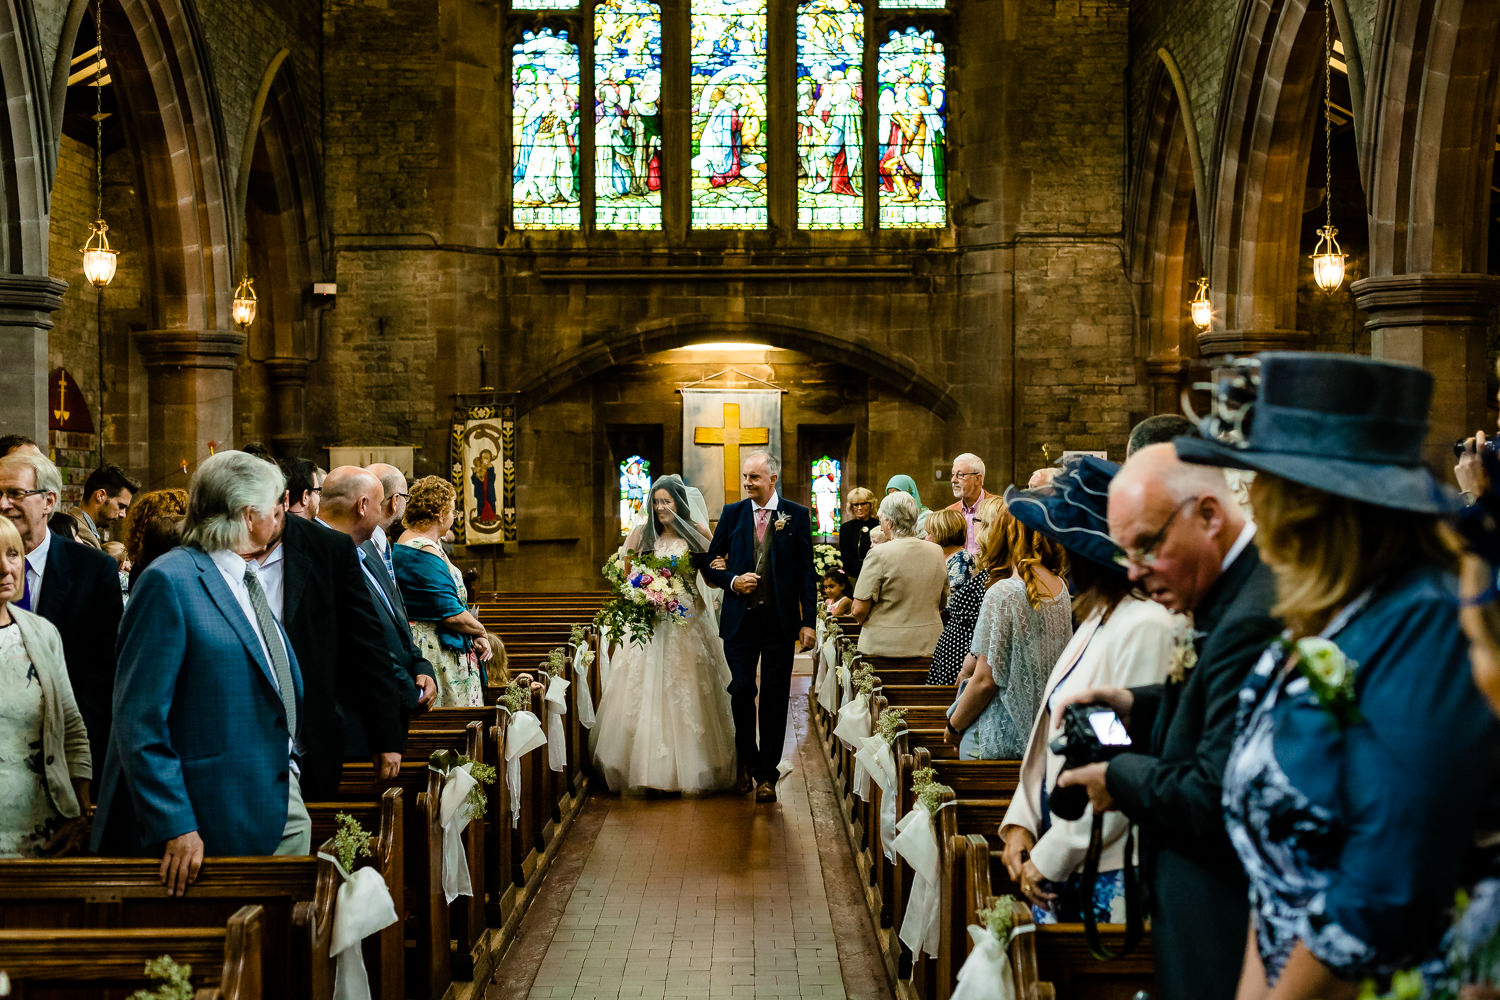 Rochdale-Wedding-Photographer-032.jpg